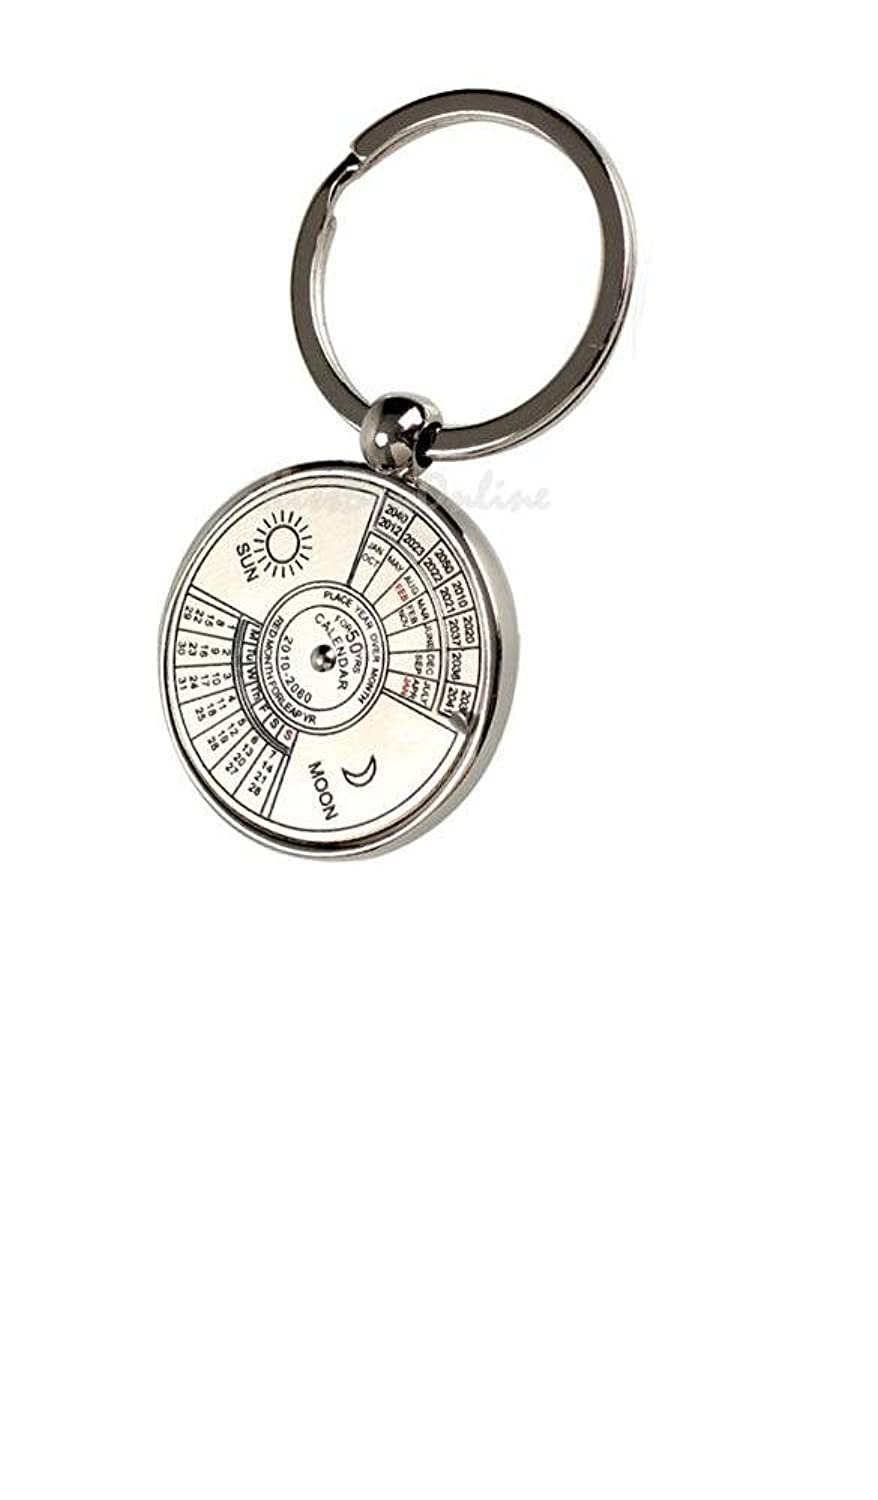 Gift for Fathers Day - Perpetual Calendar Keychain turgenev ivan sergeevich fathers and children